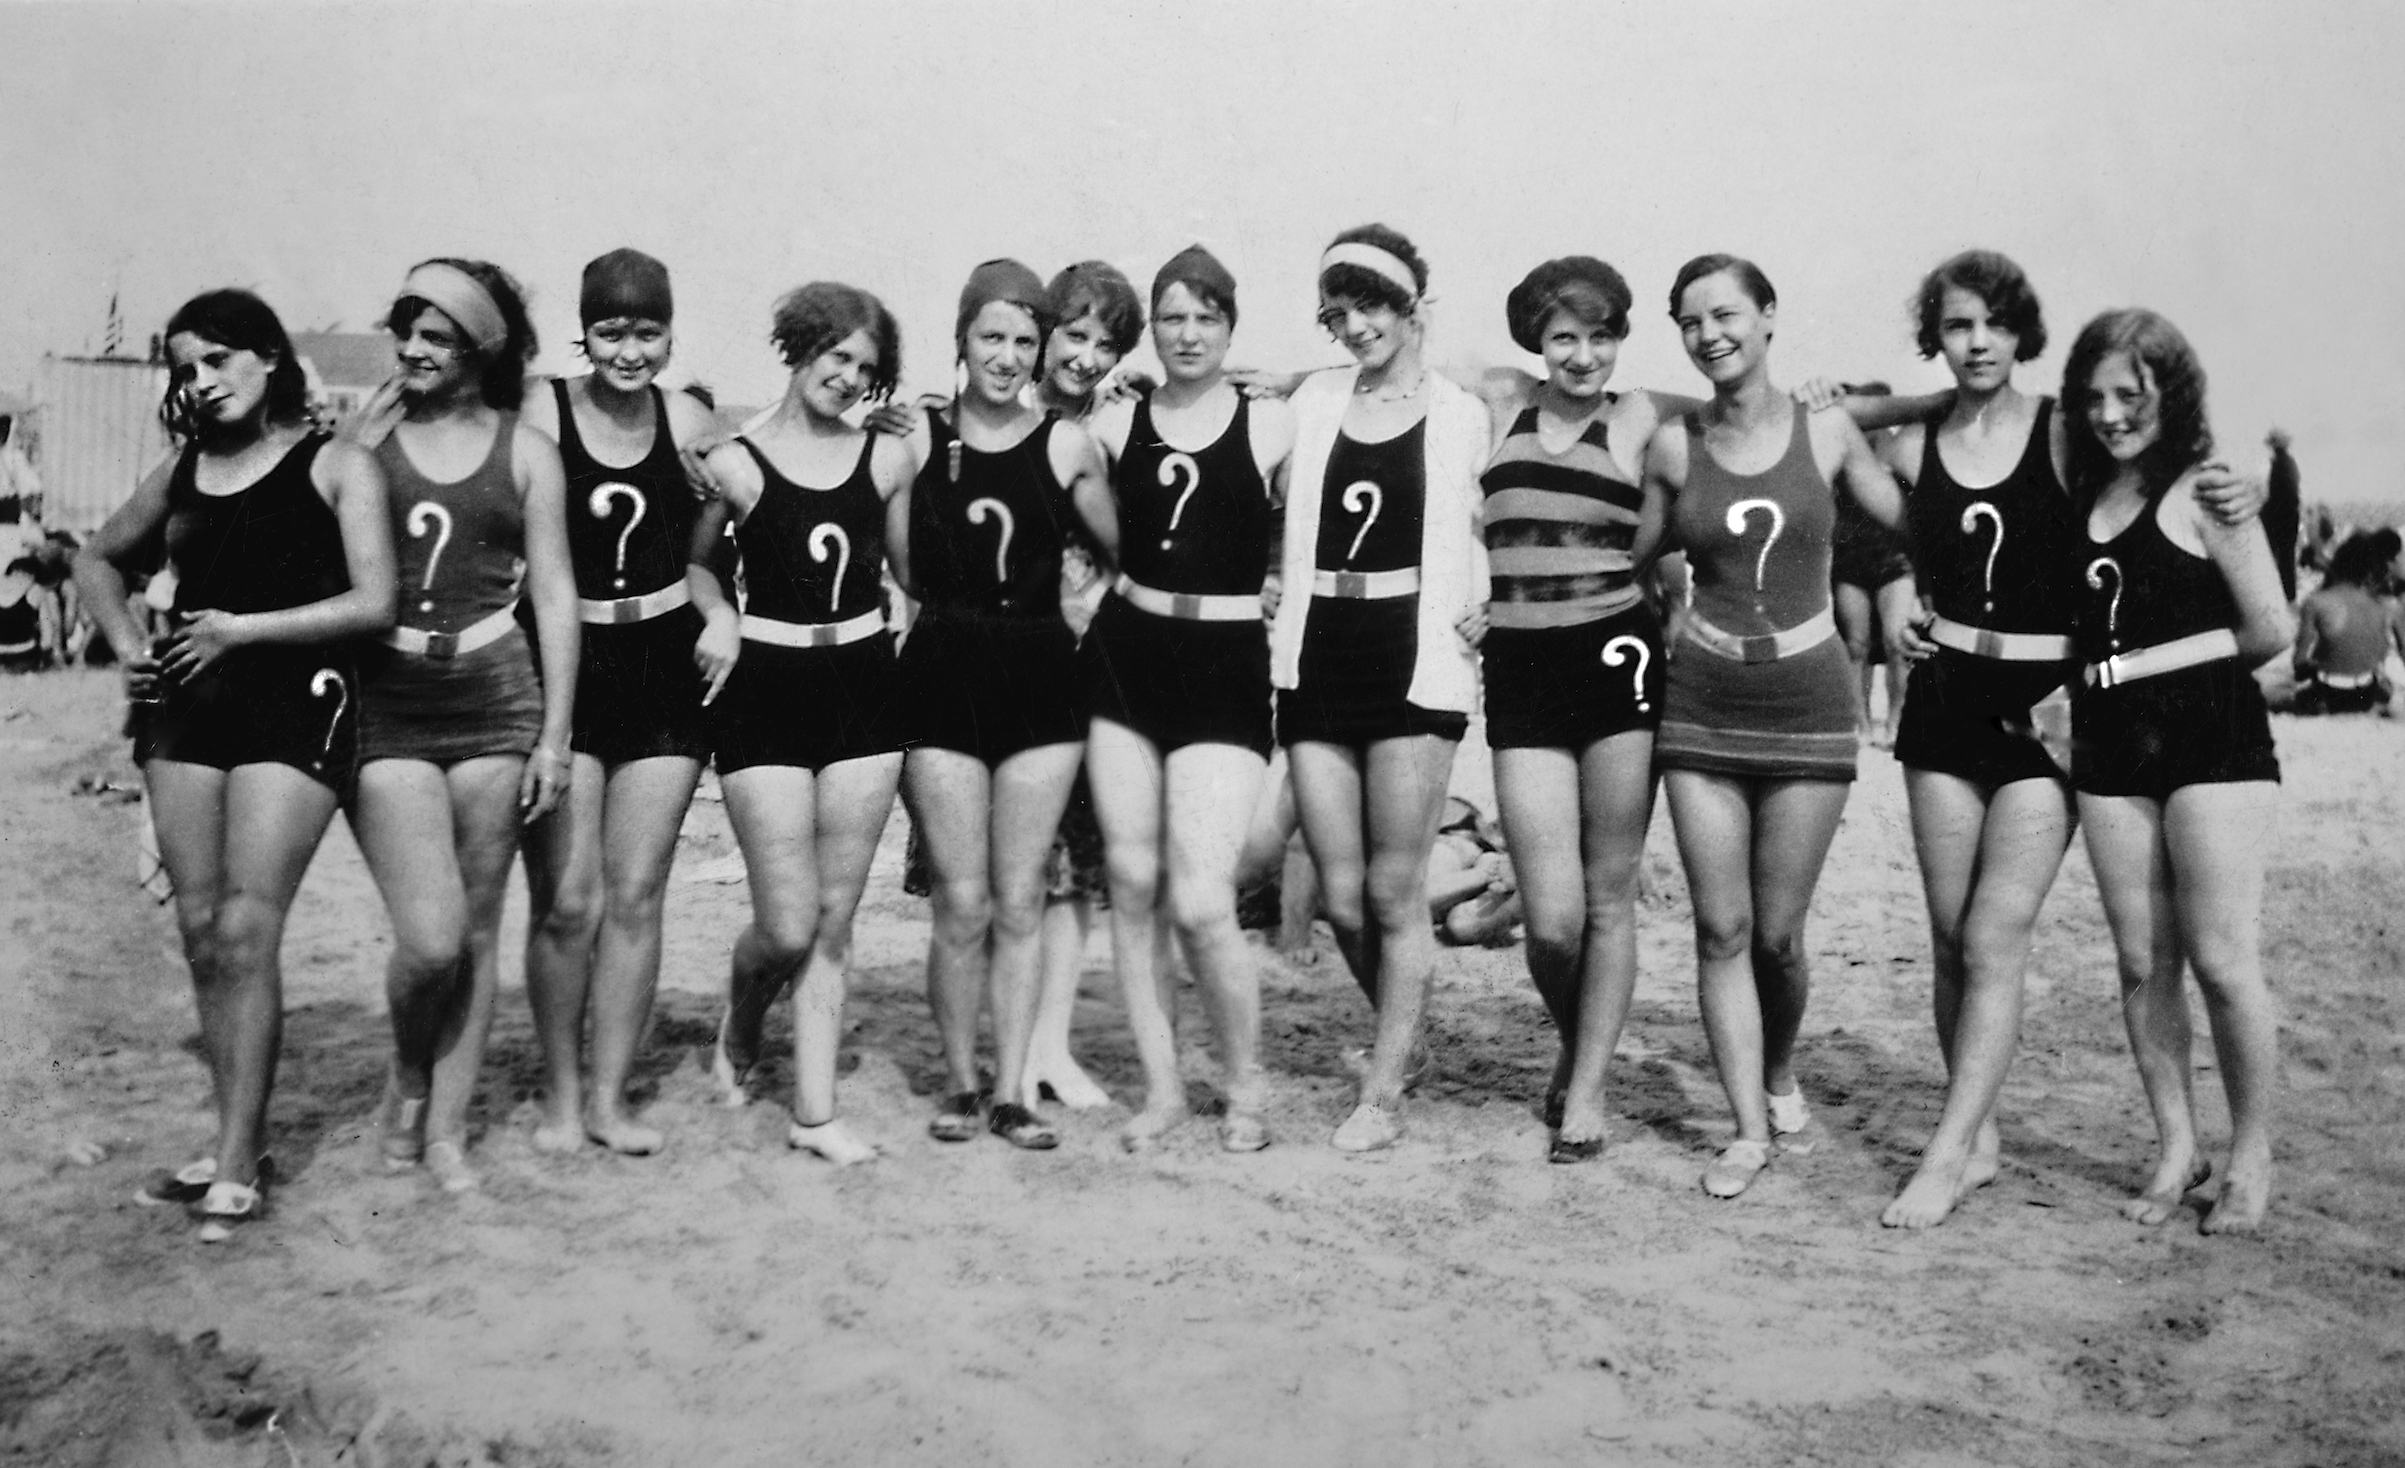 A group of flappers with question marks on their swim suits pose together on the beach, ca. 1925.